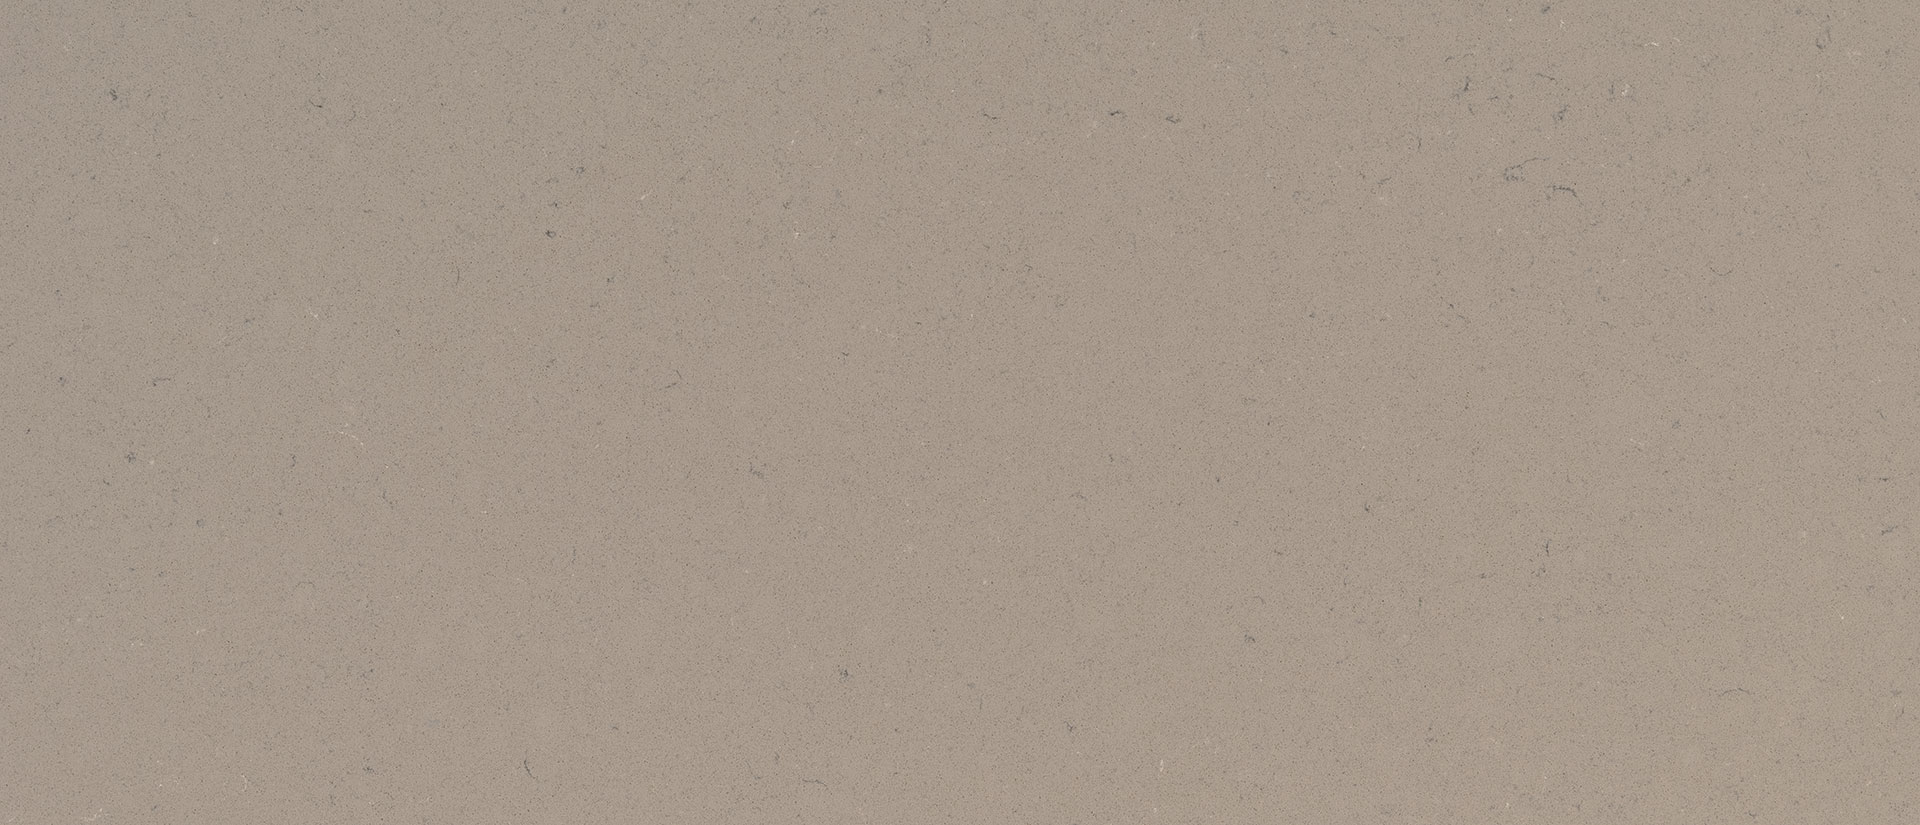 Taupe Quartz Countertop Fossil Taupe Quartz Countertops Q Premium Natural Quartz